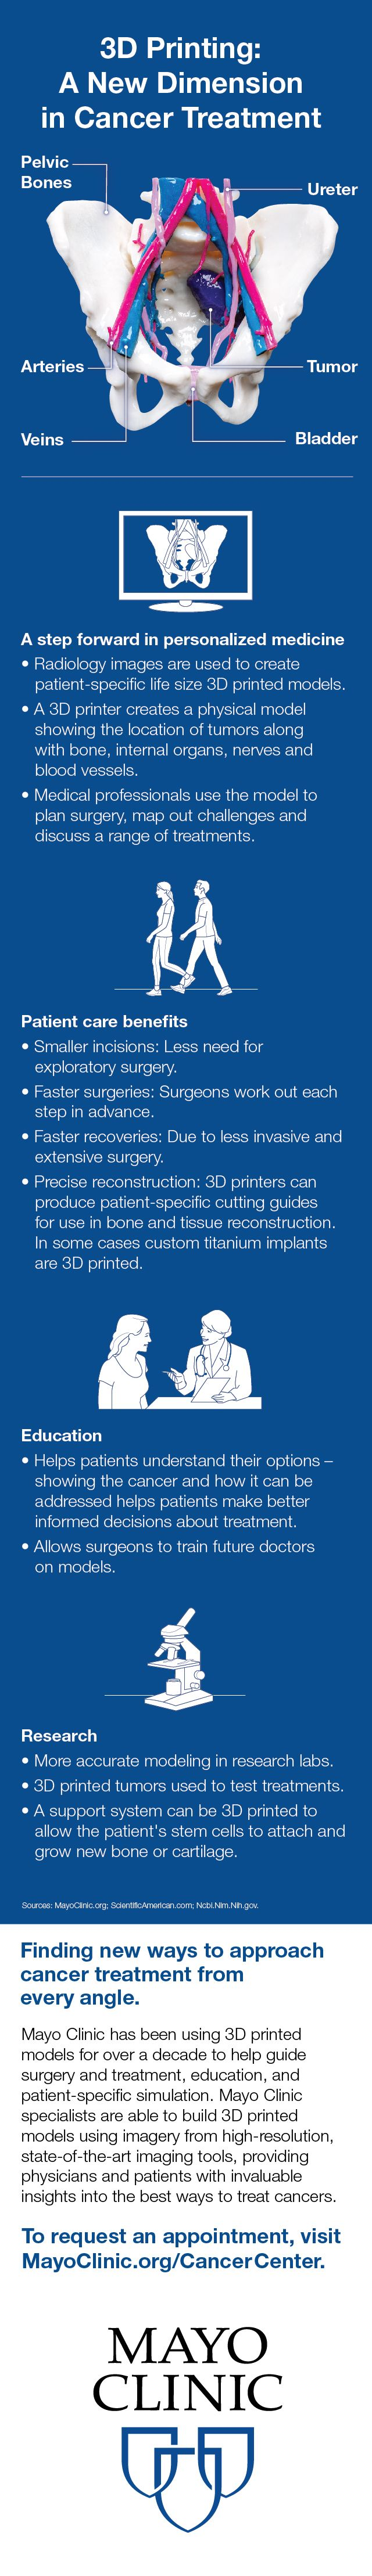 3D Printing: A new dimension in cancer treatment